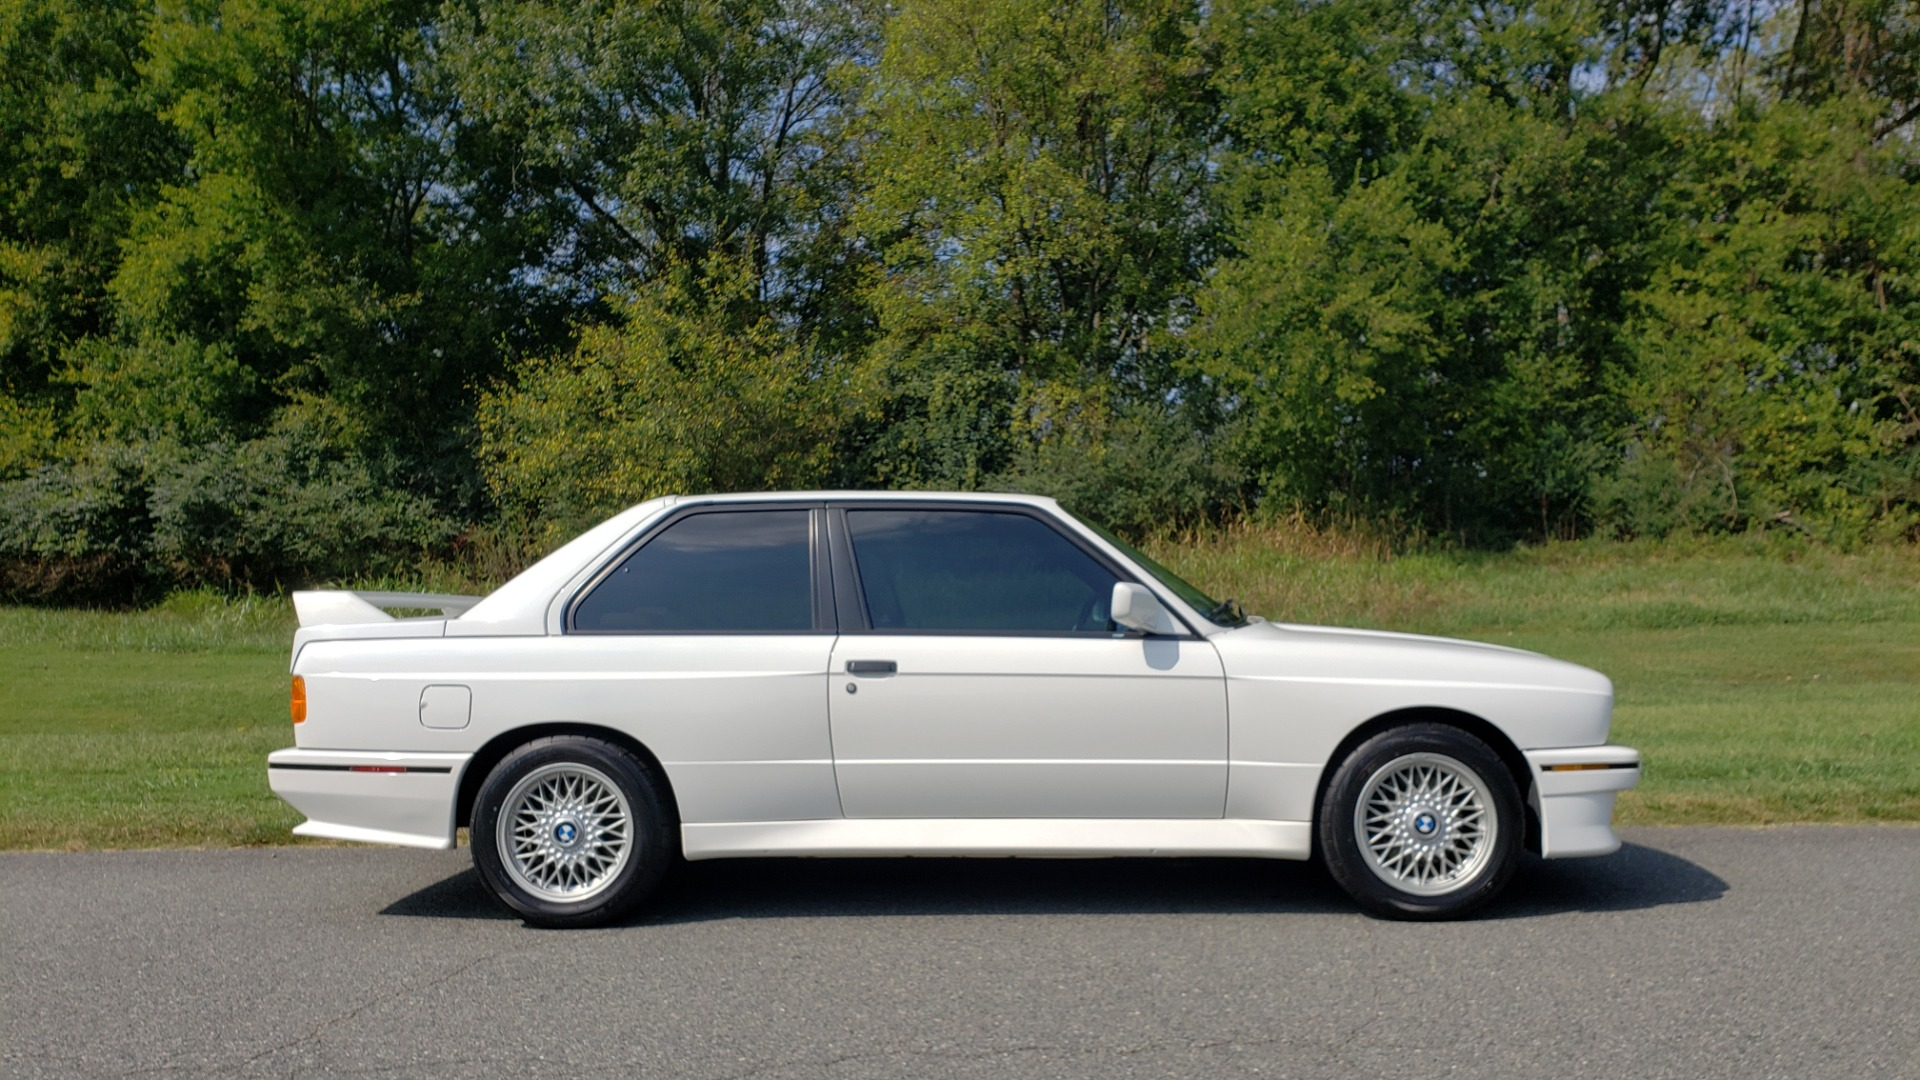 Used 1989 BMW M3 COUPE 2DR / 5-SPEED MAN / LOW MILES / SUPER CLEAN for sale Sold at Formula Imports in Charlotte NC 28227 27